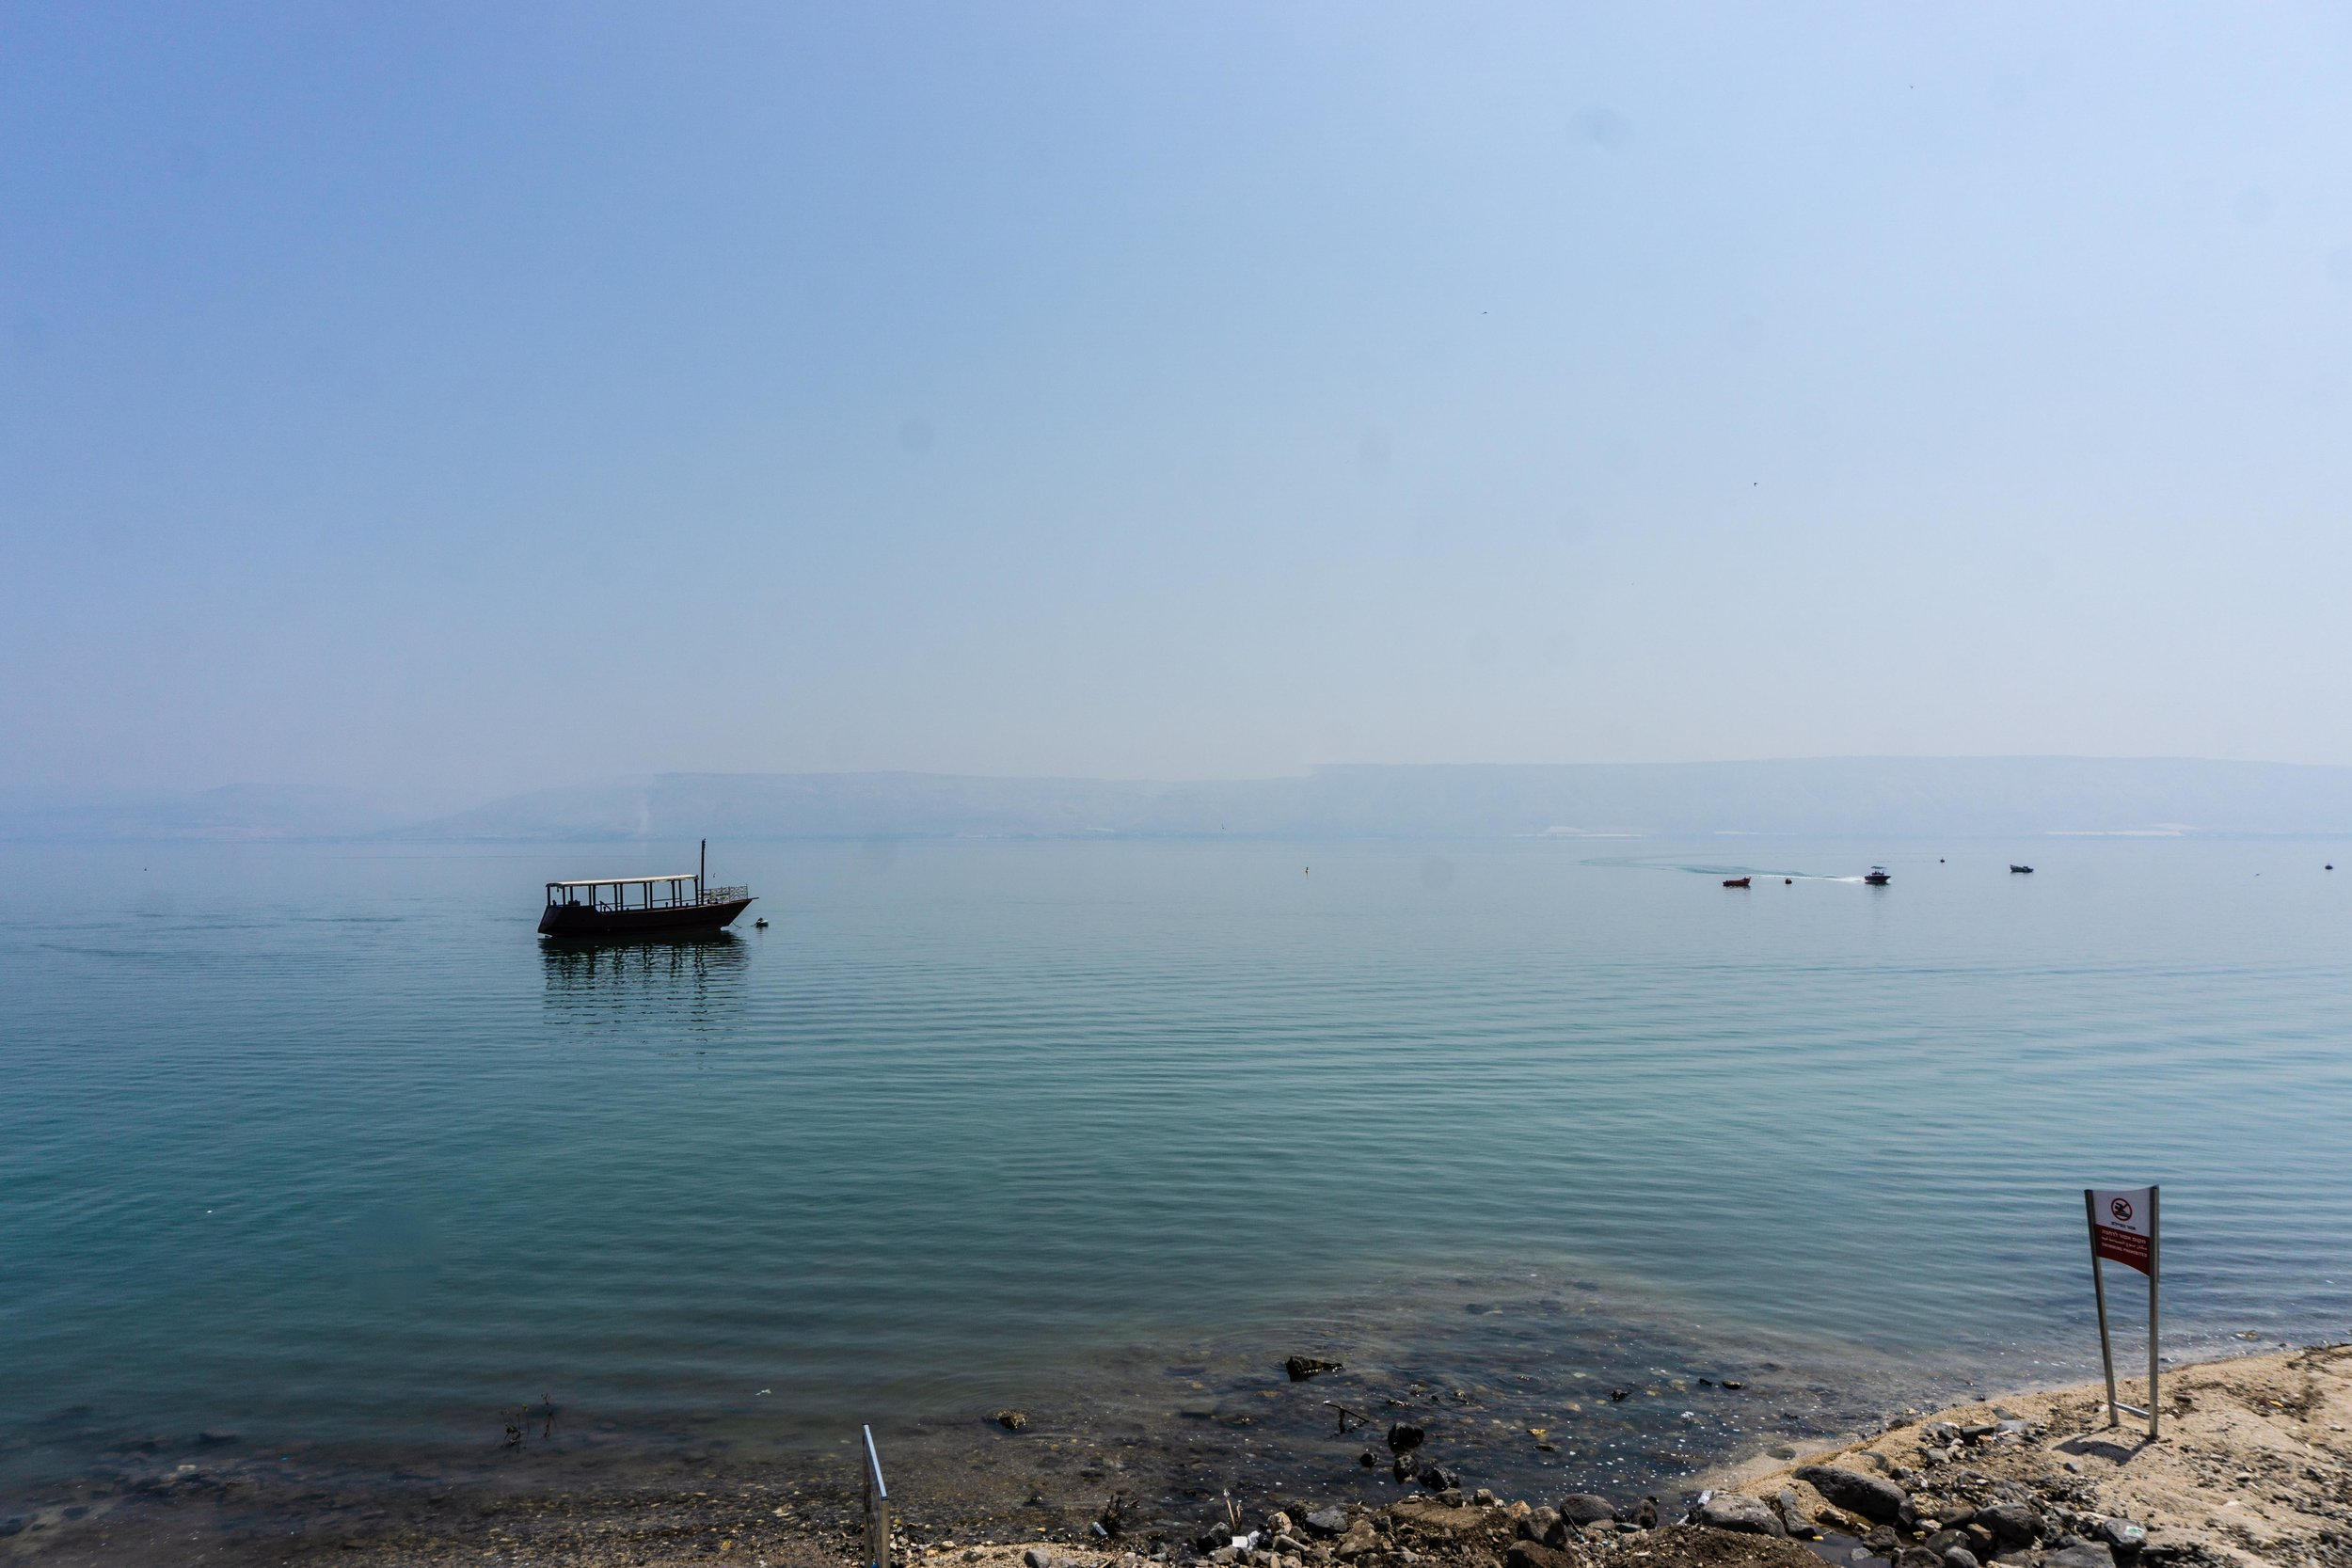 Sea of Galilee - it's smaller than we thought